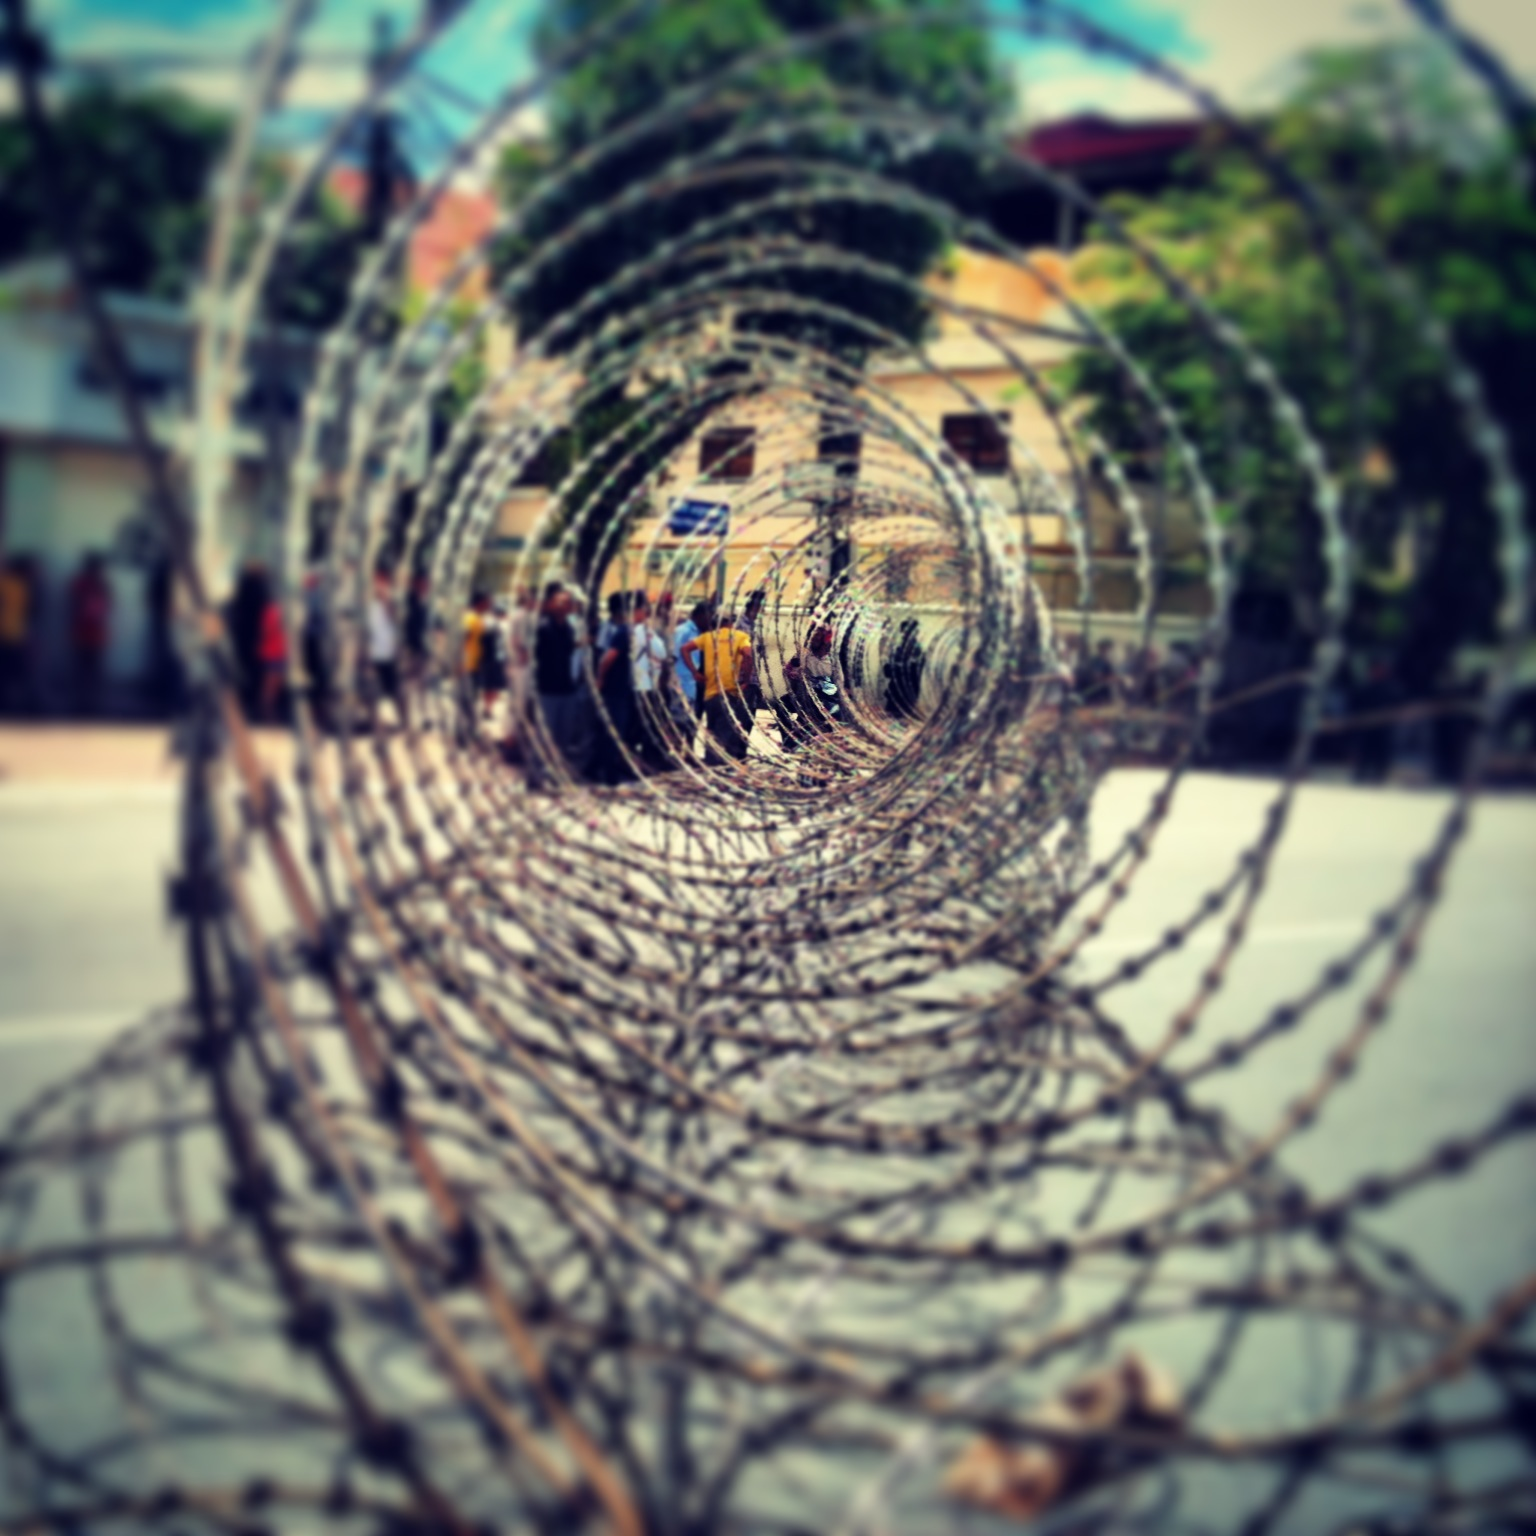 Barbed wire cordons off a section of central Phnom Penh near the residence of Prime Minister Hun Sen.